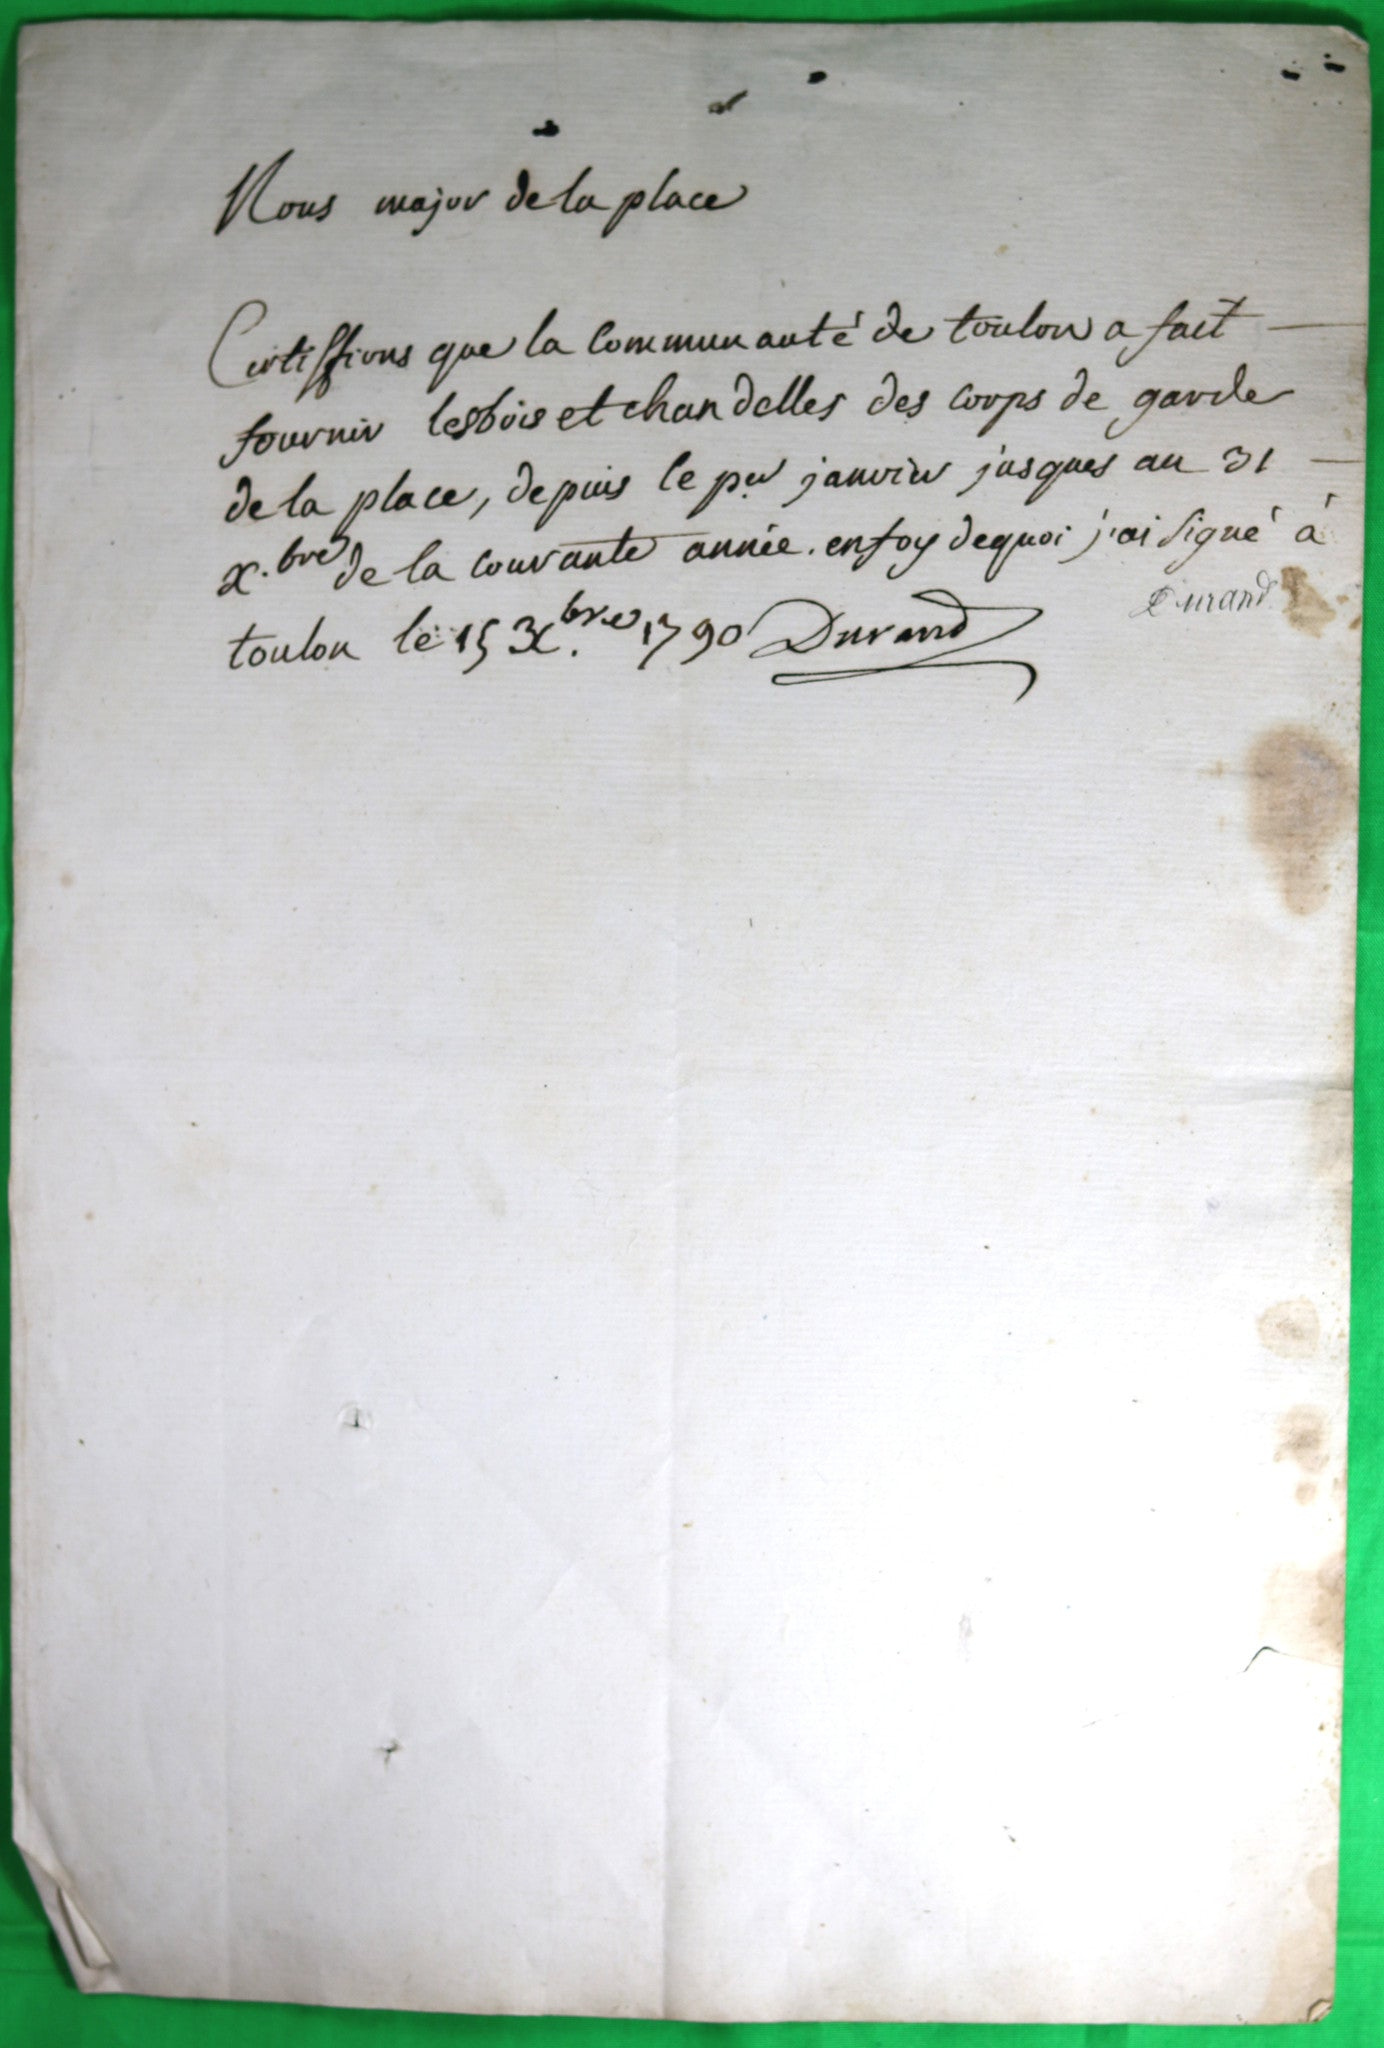 1790 Toulon certificat de fourniture corps de garde, Major fusillé en 1793